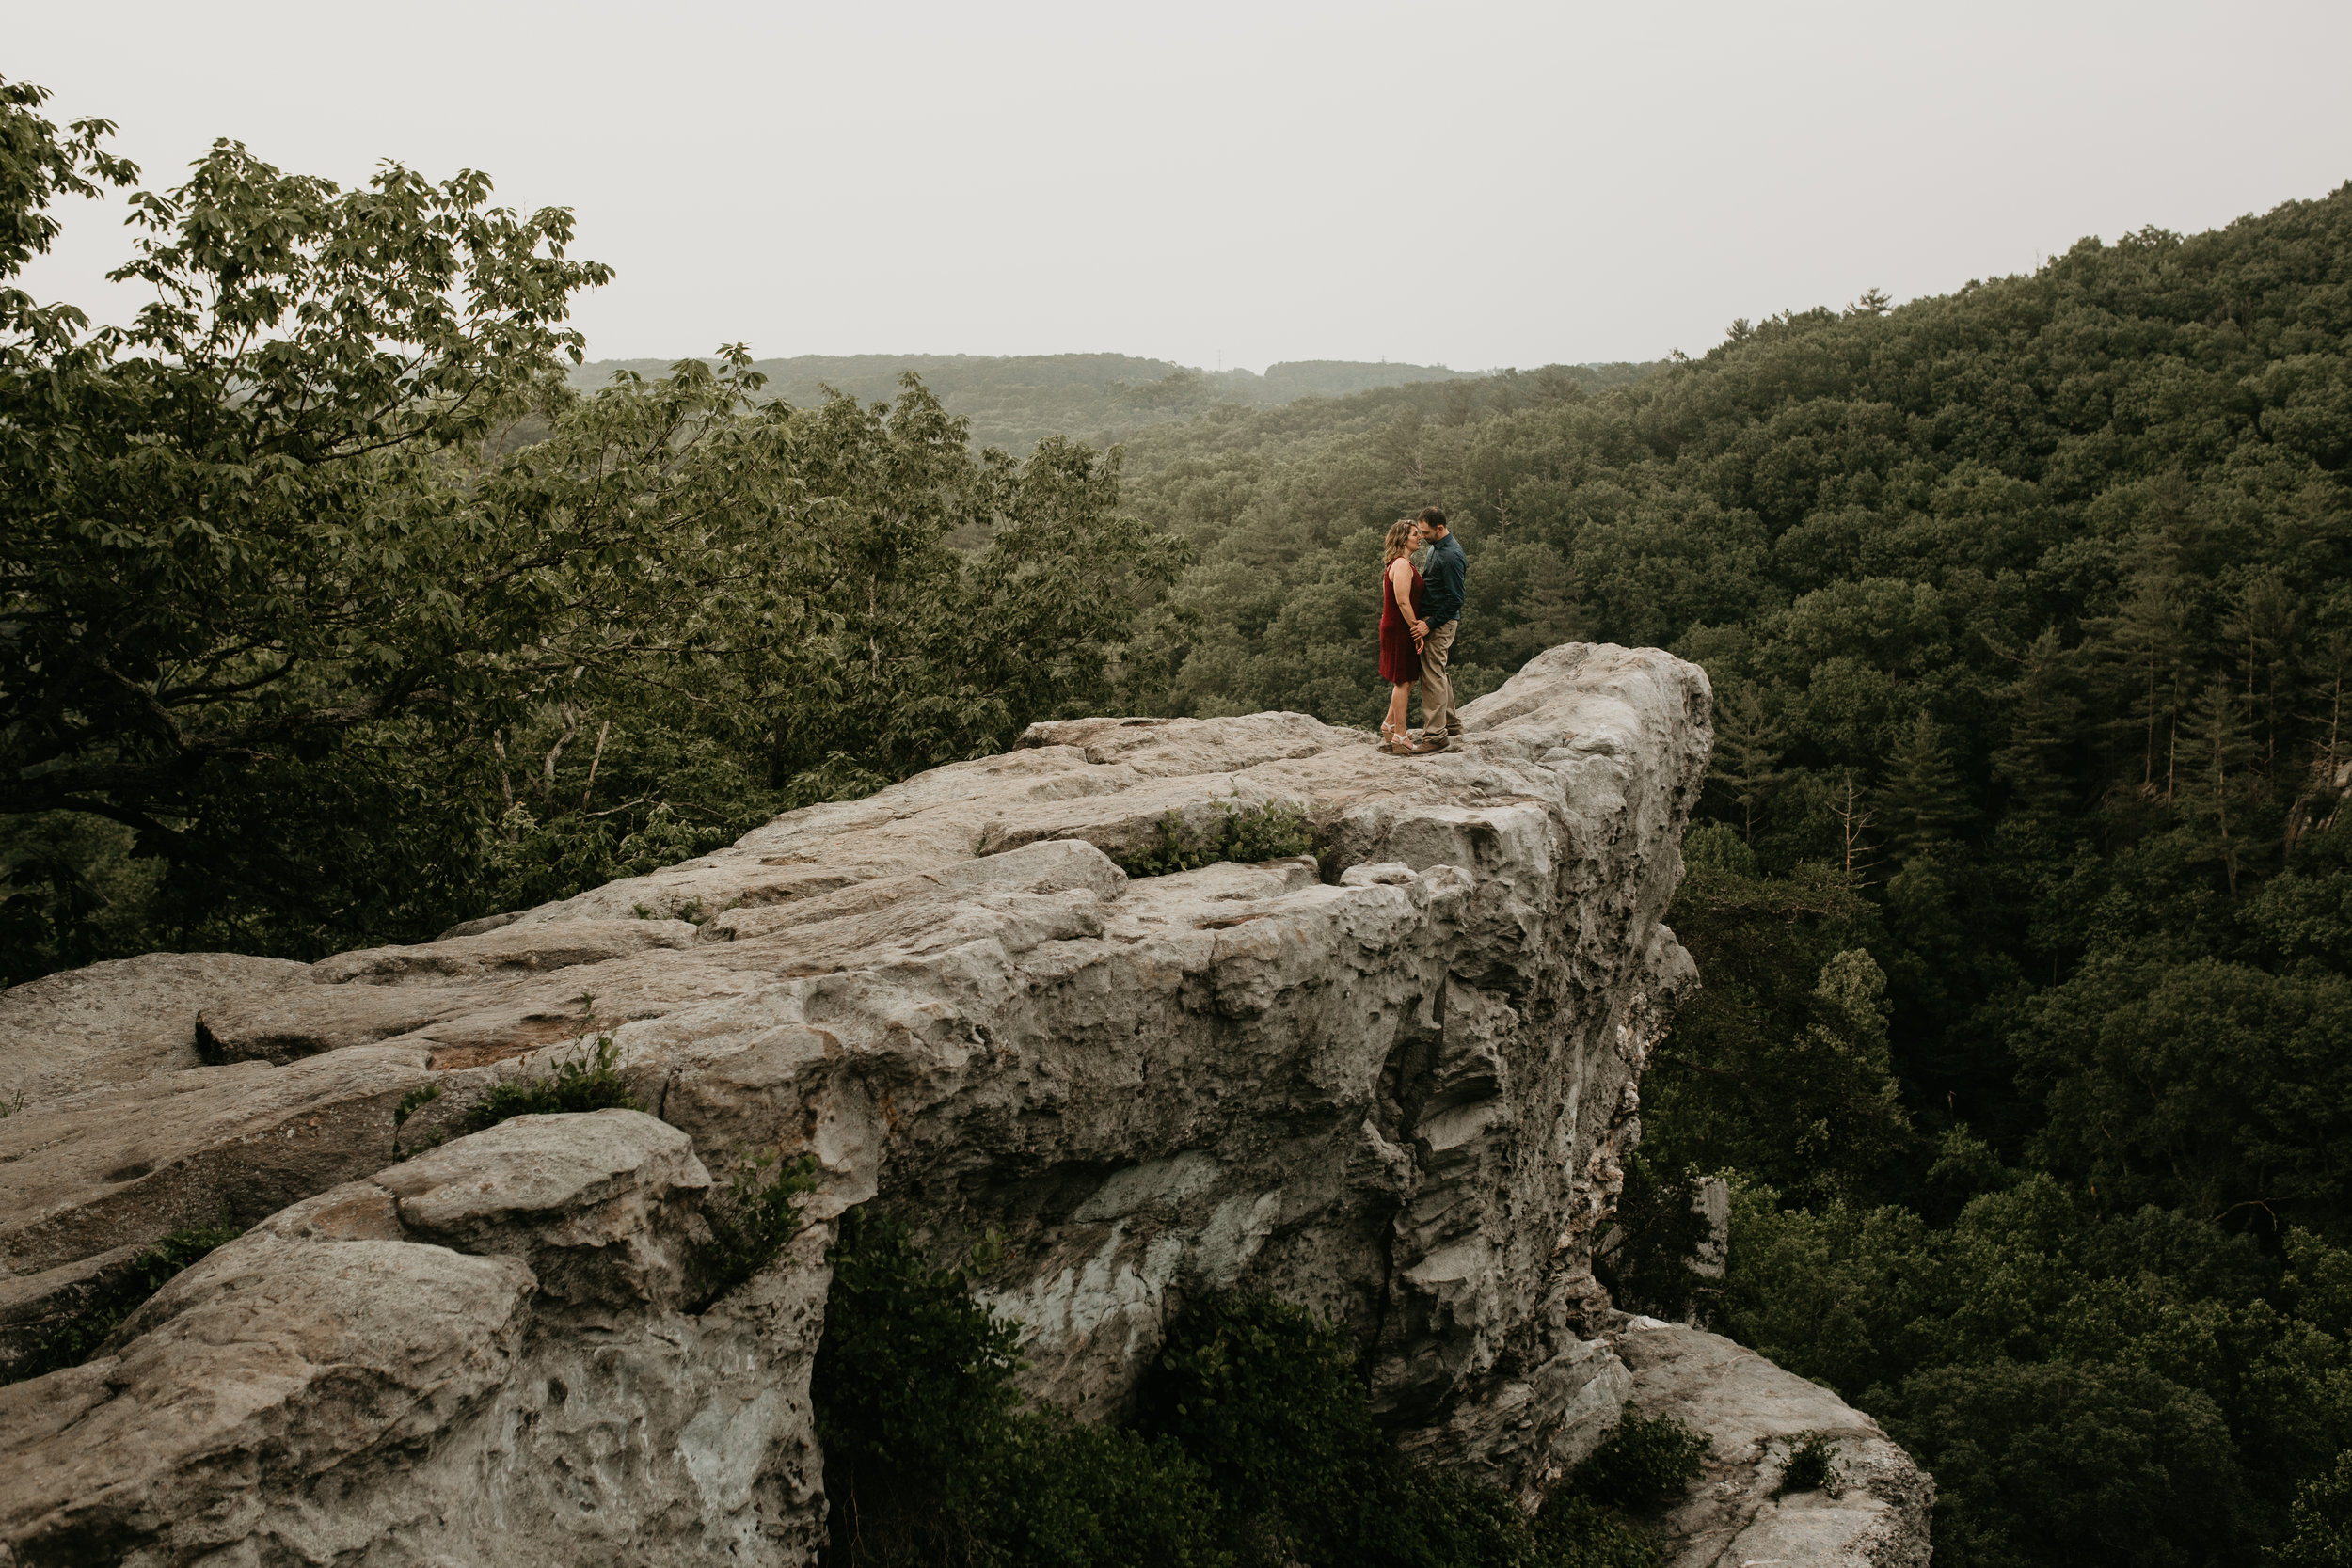 Nicole-Daacke-Photography-rock-state-park-overlook-king-queen-seat-maryland-hiking-adventure-engagement-session-photos-portraits-summer-bel-air-dog-engagement-session-28.jpg